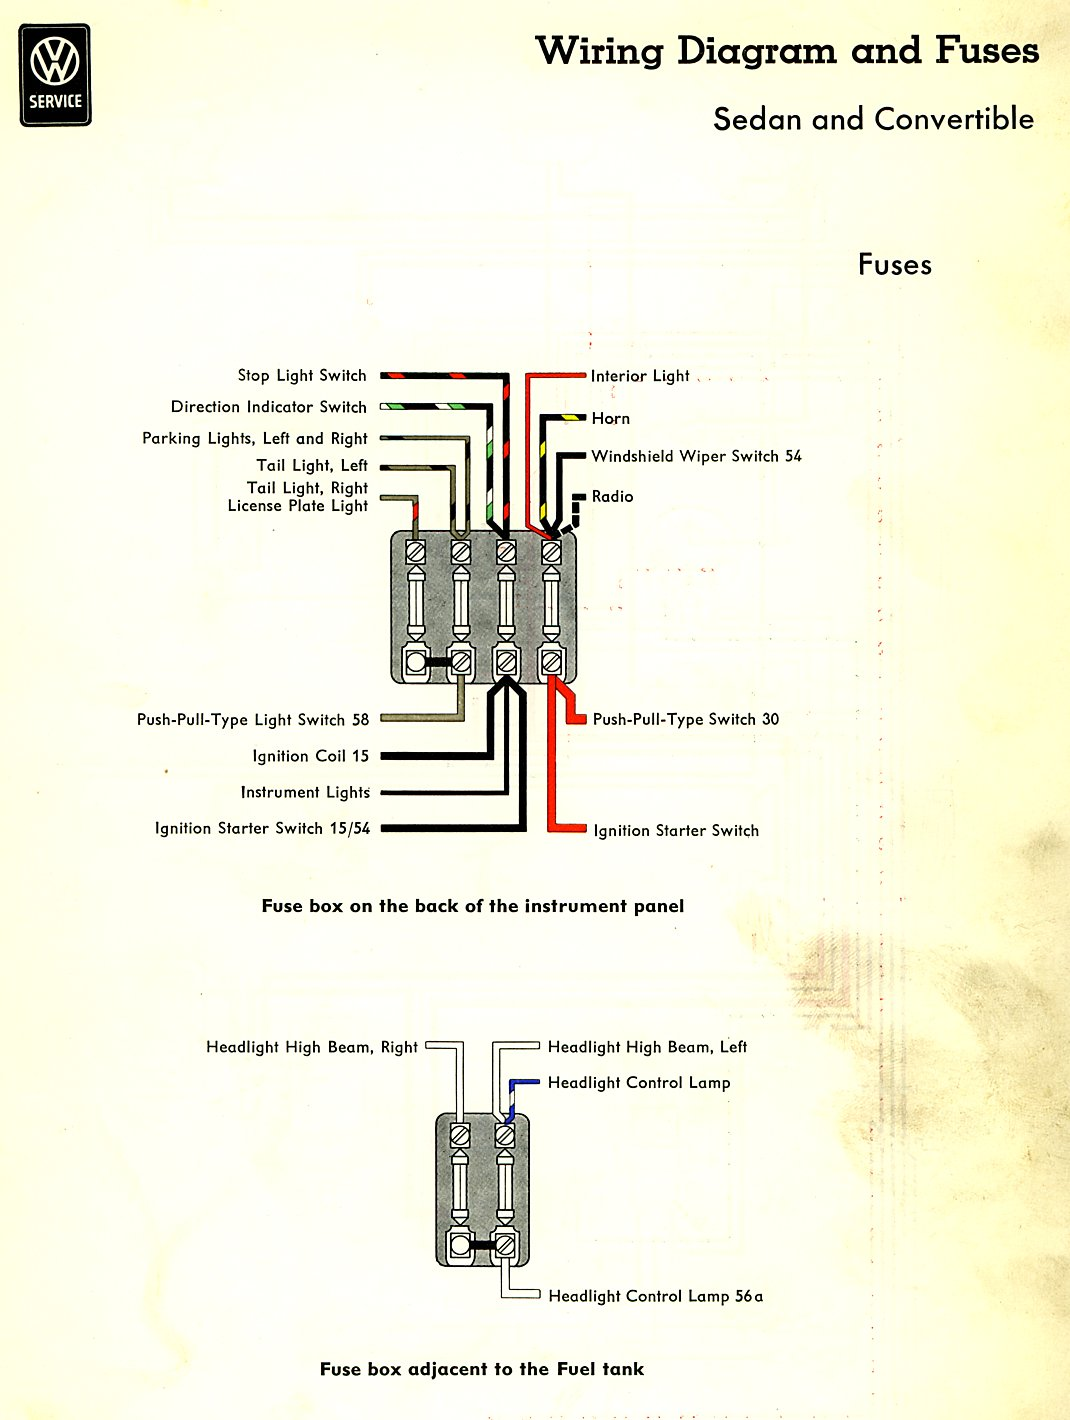 Type 1 Wiring Diagrams 1988 Civic Fuse Box Diagram